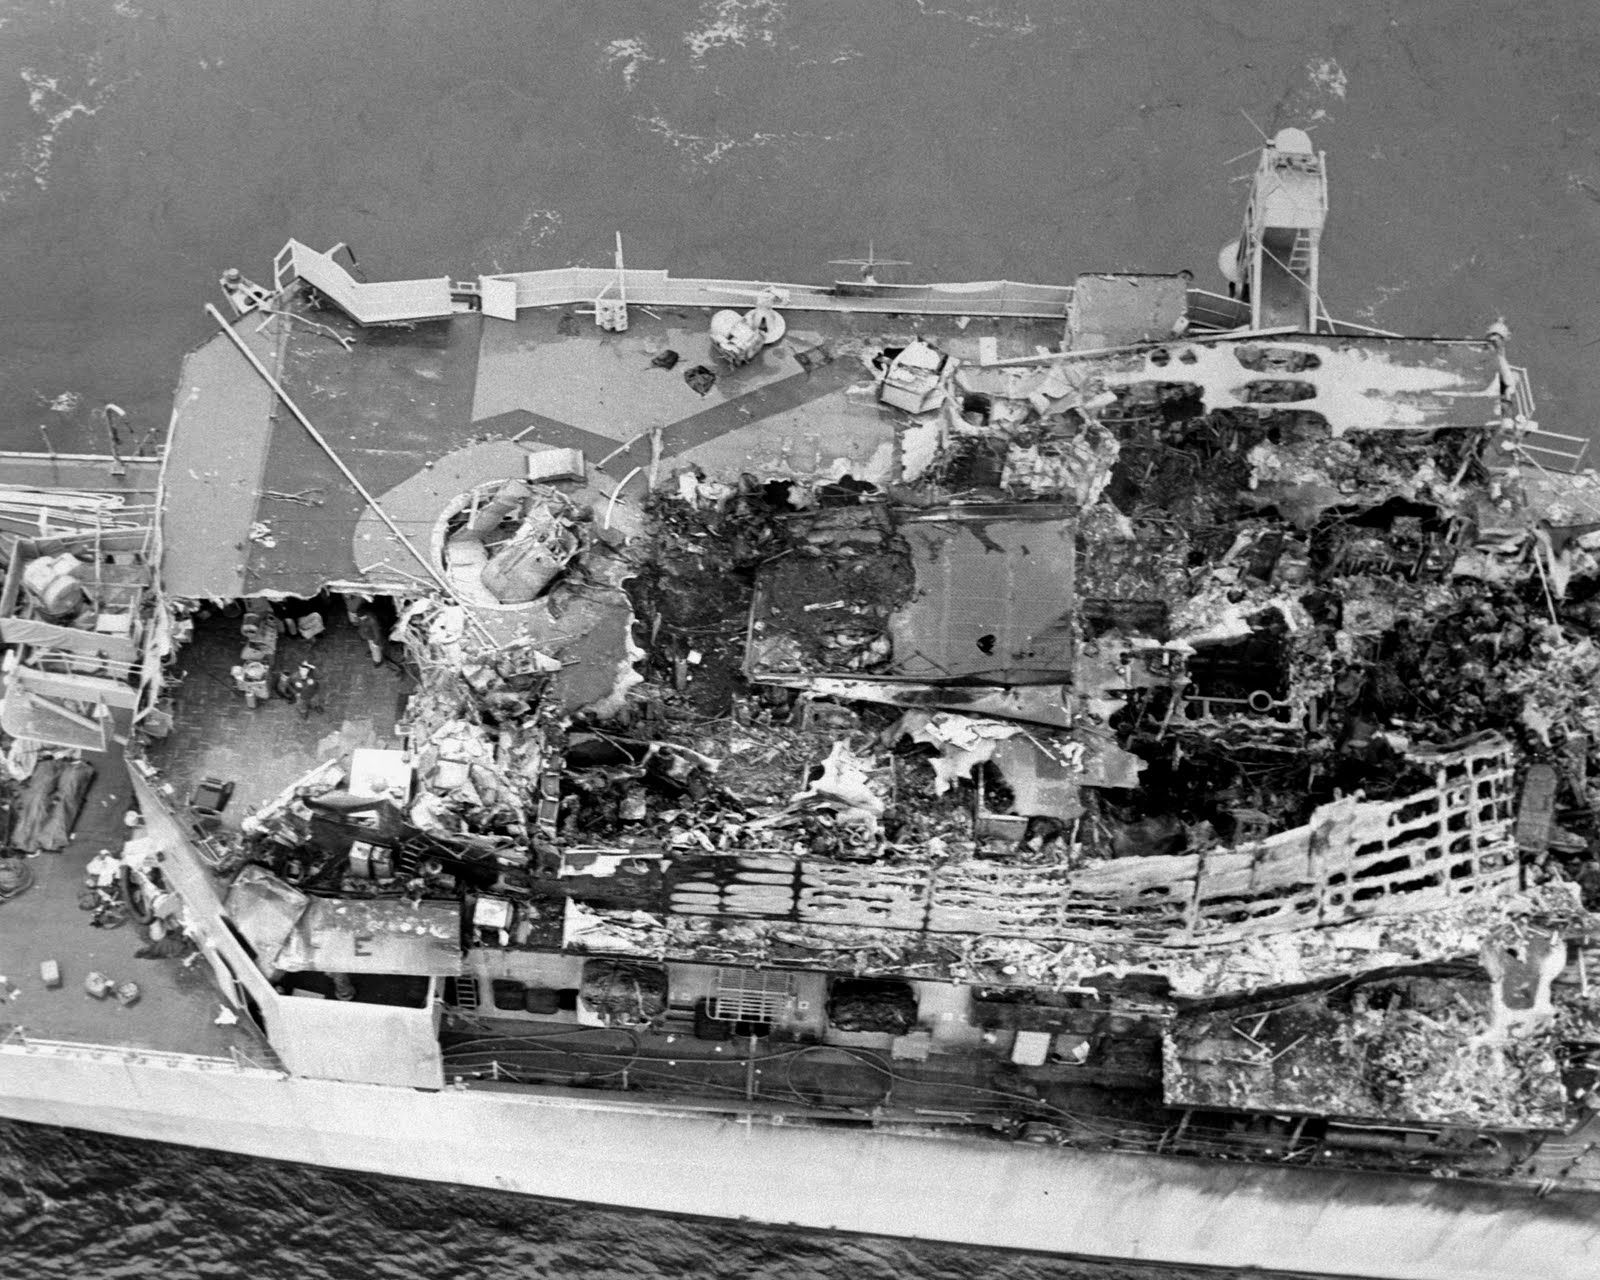 The damage to USS Belknap caused by a collision with USS John F Kennedy and resulting fire. [1600x1280]